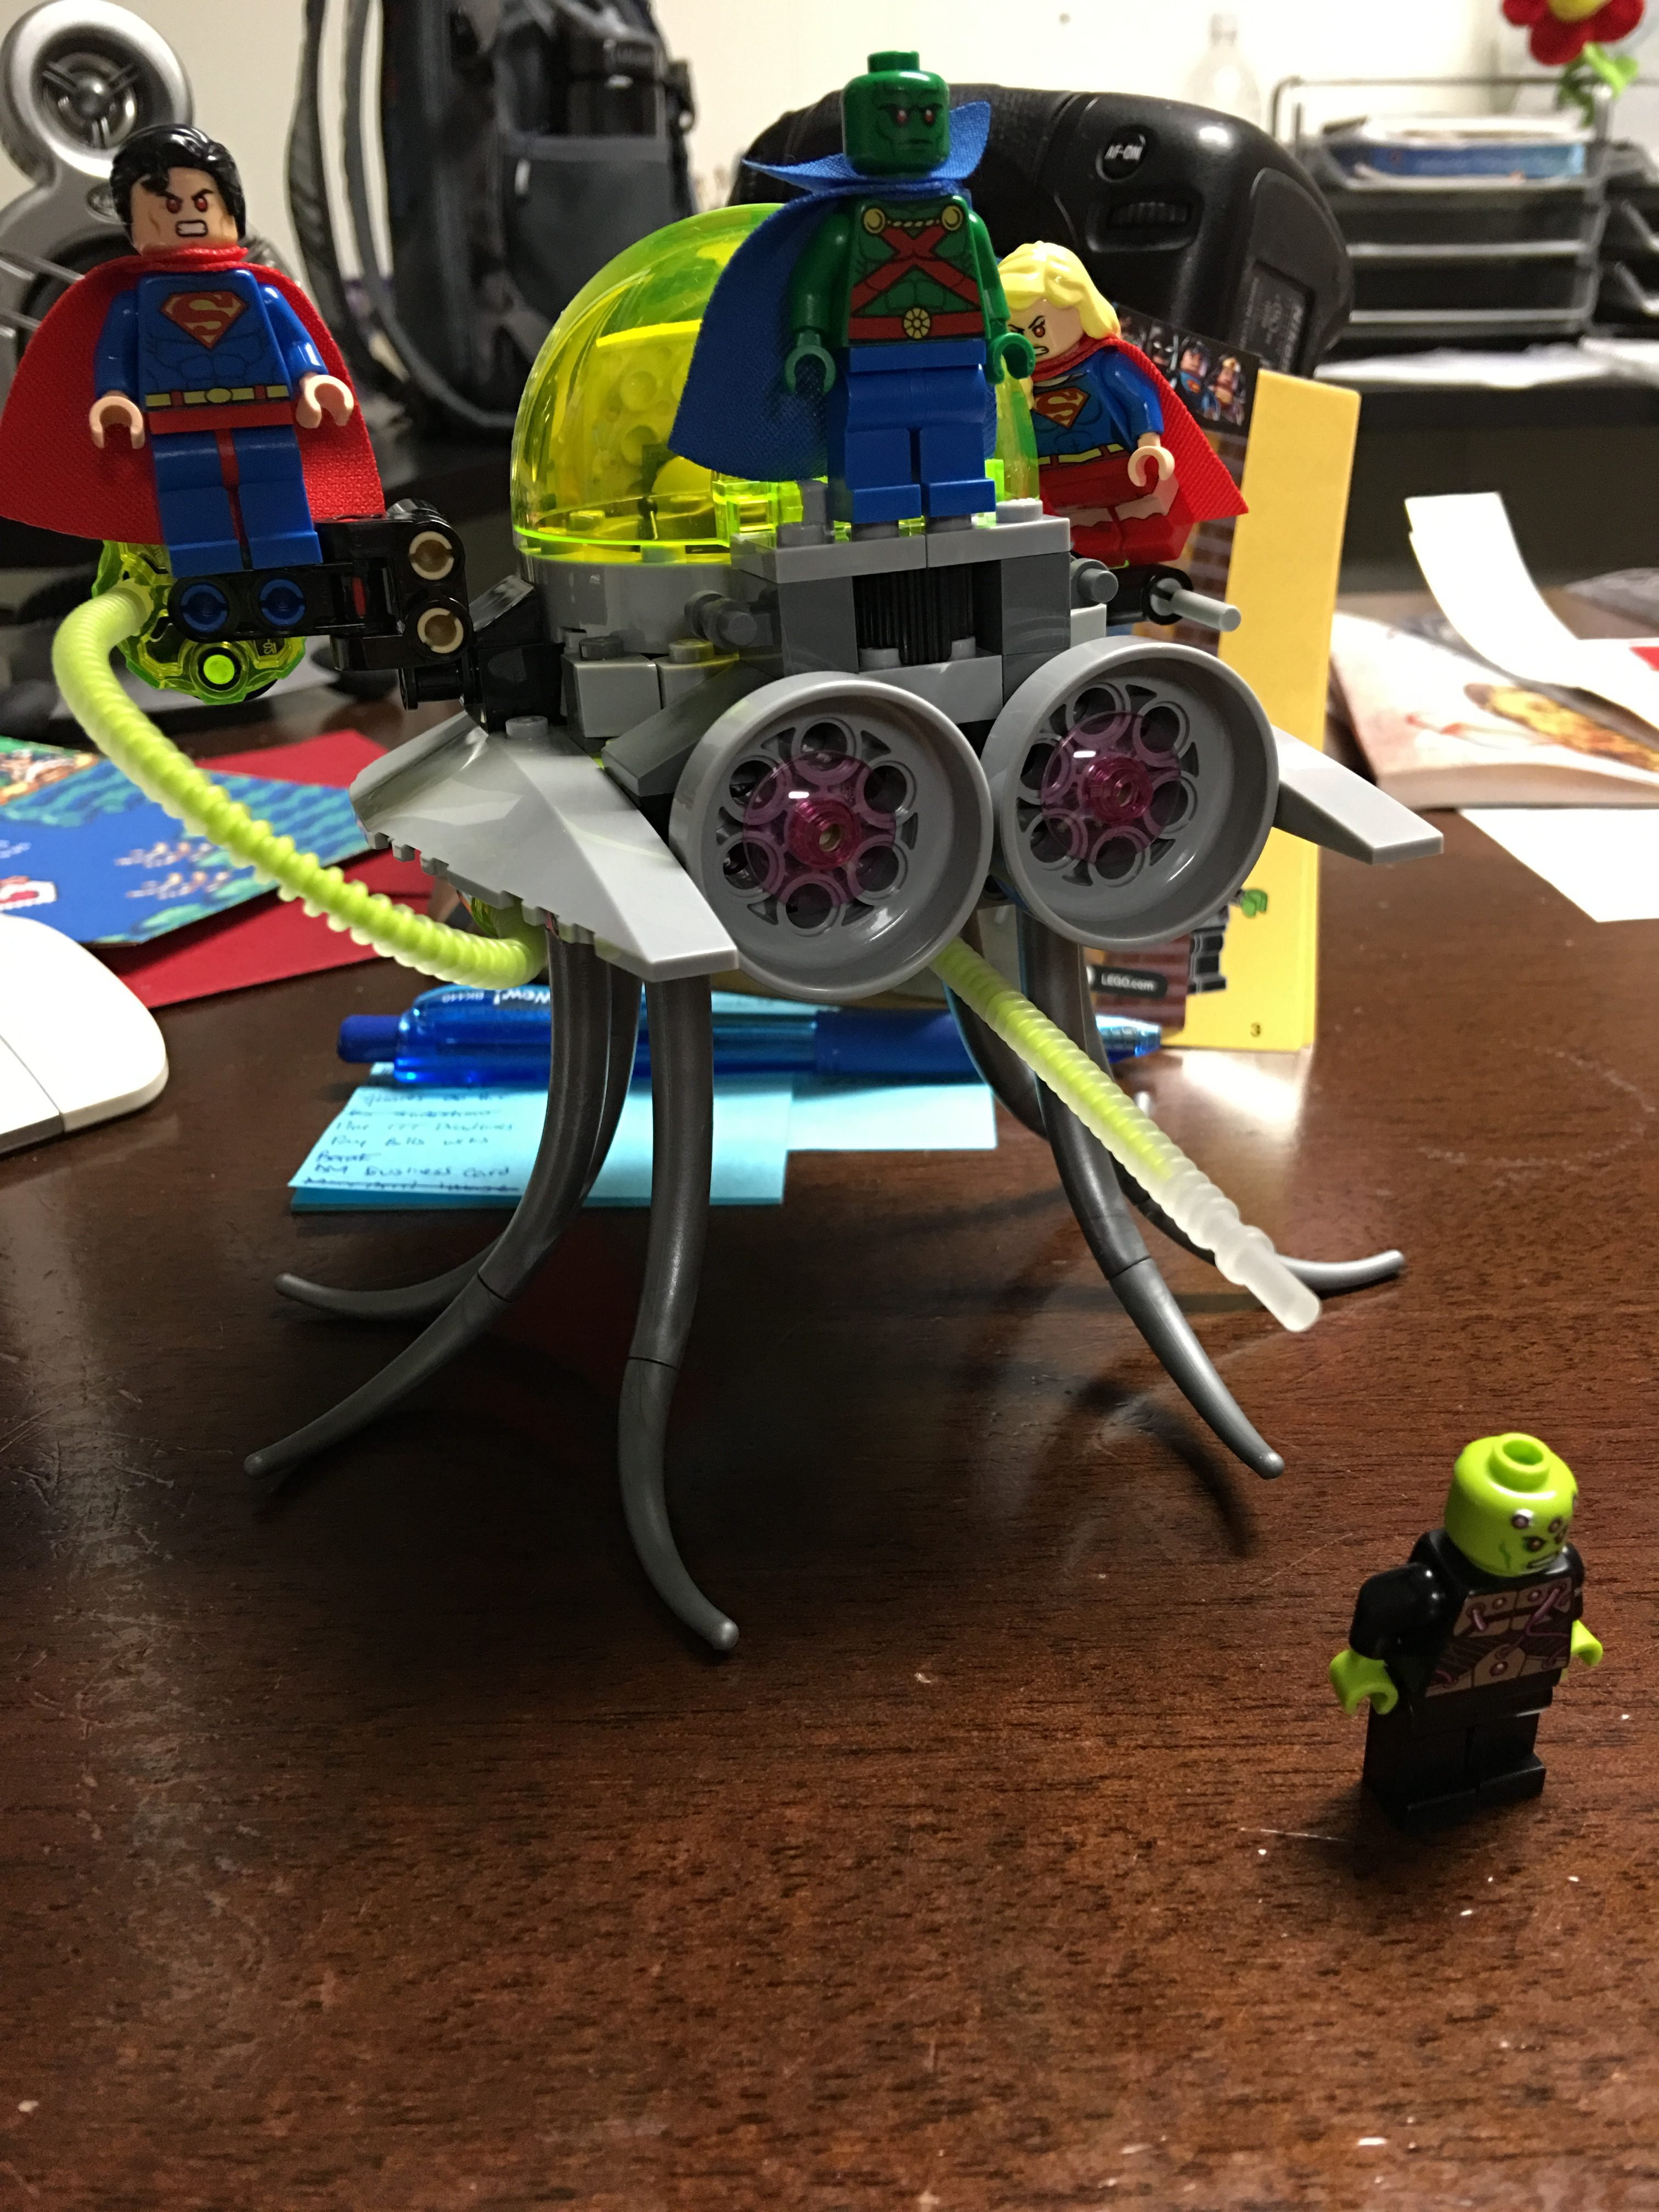 Superman vs Brainiac LEGO Review by The Allergy Chef